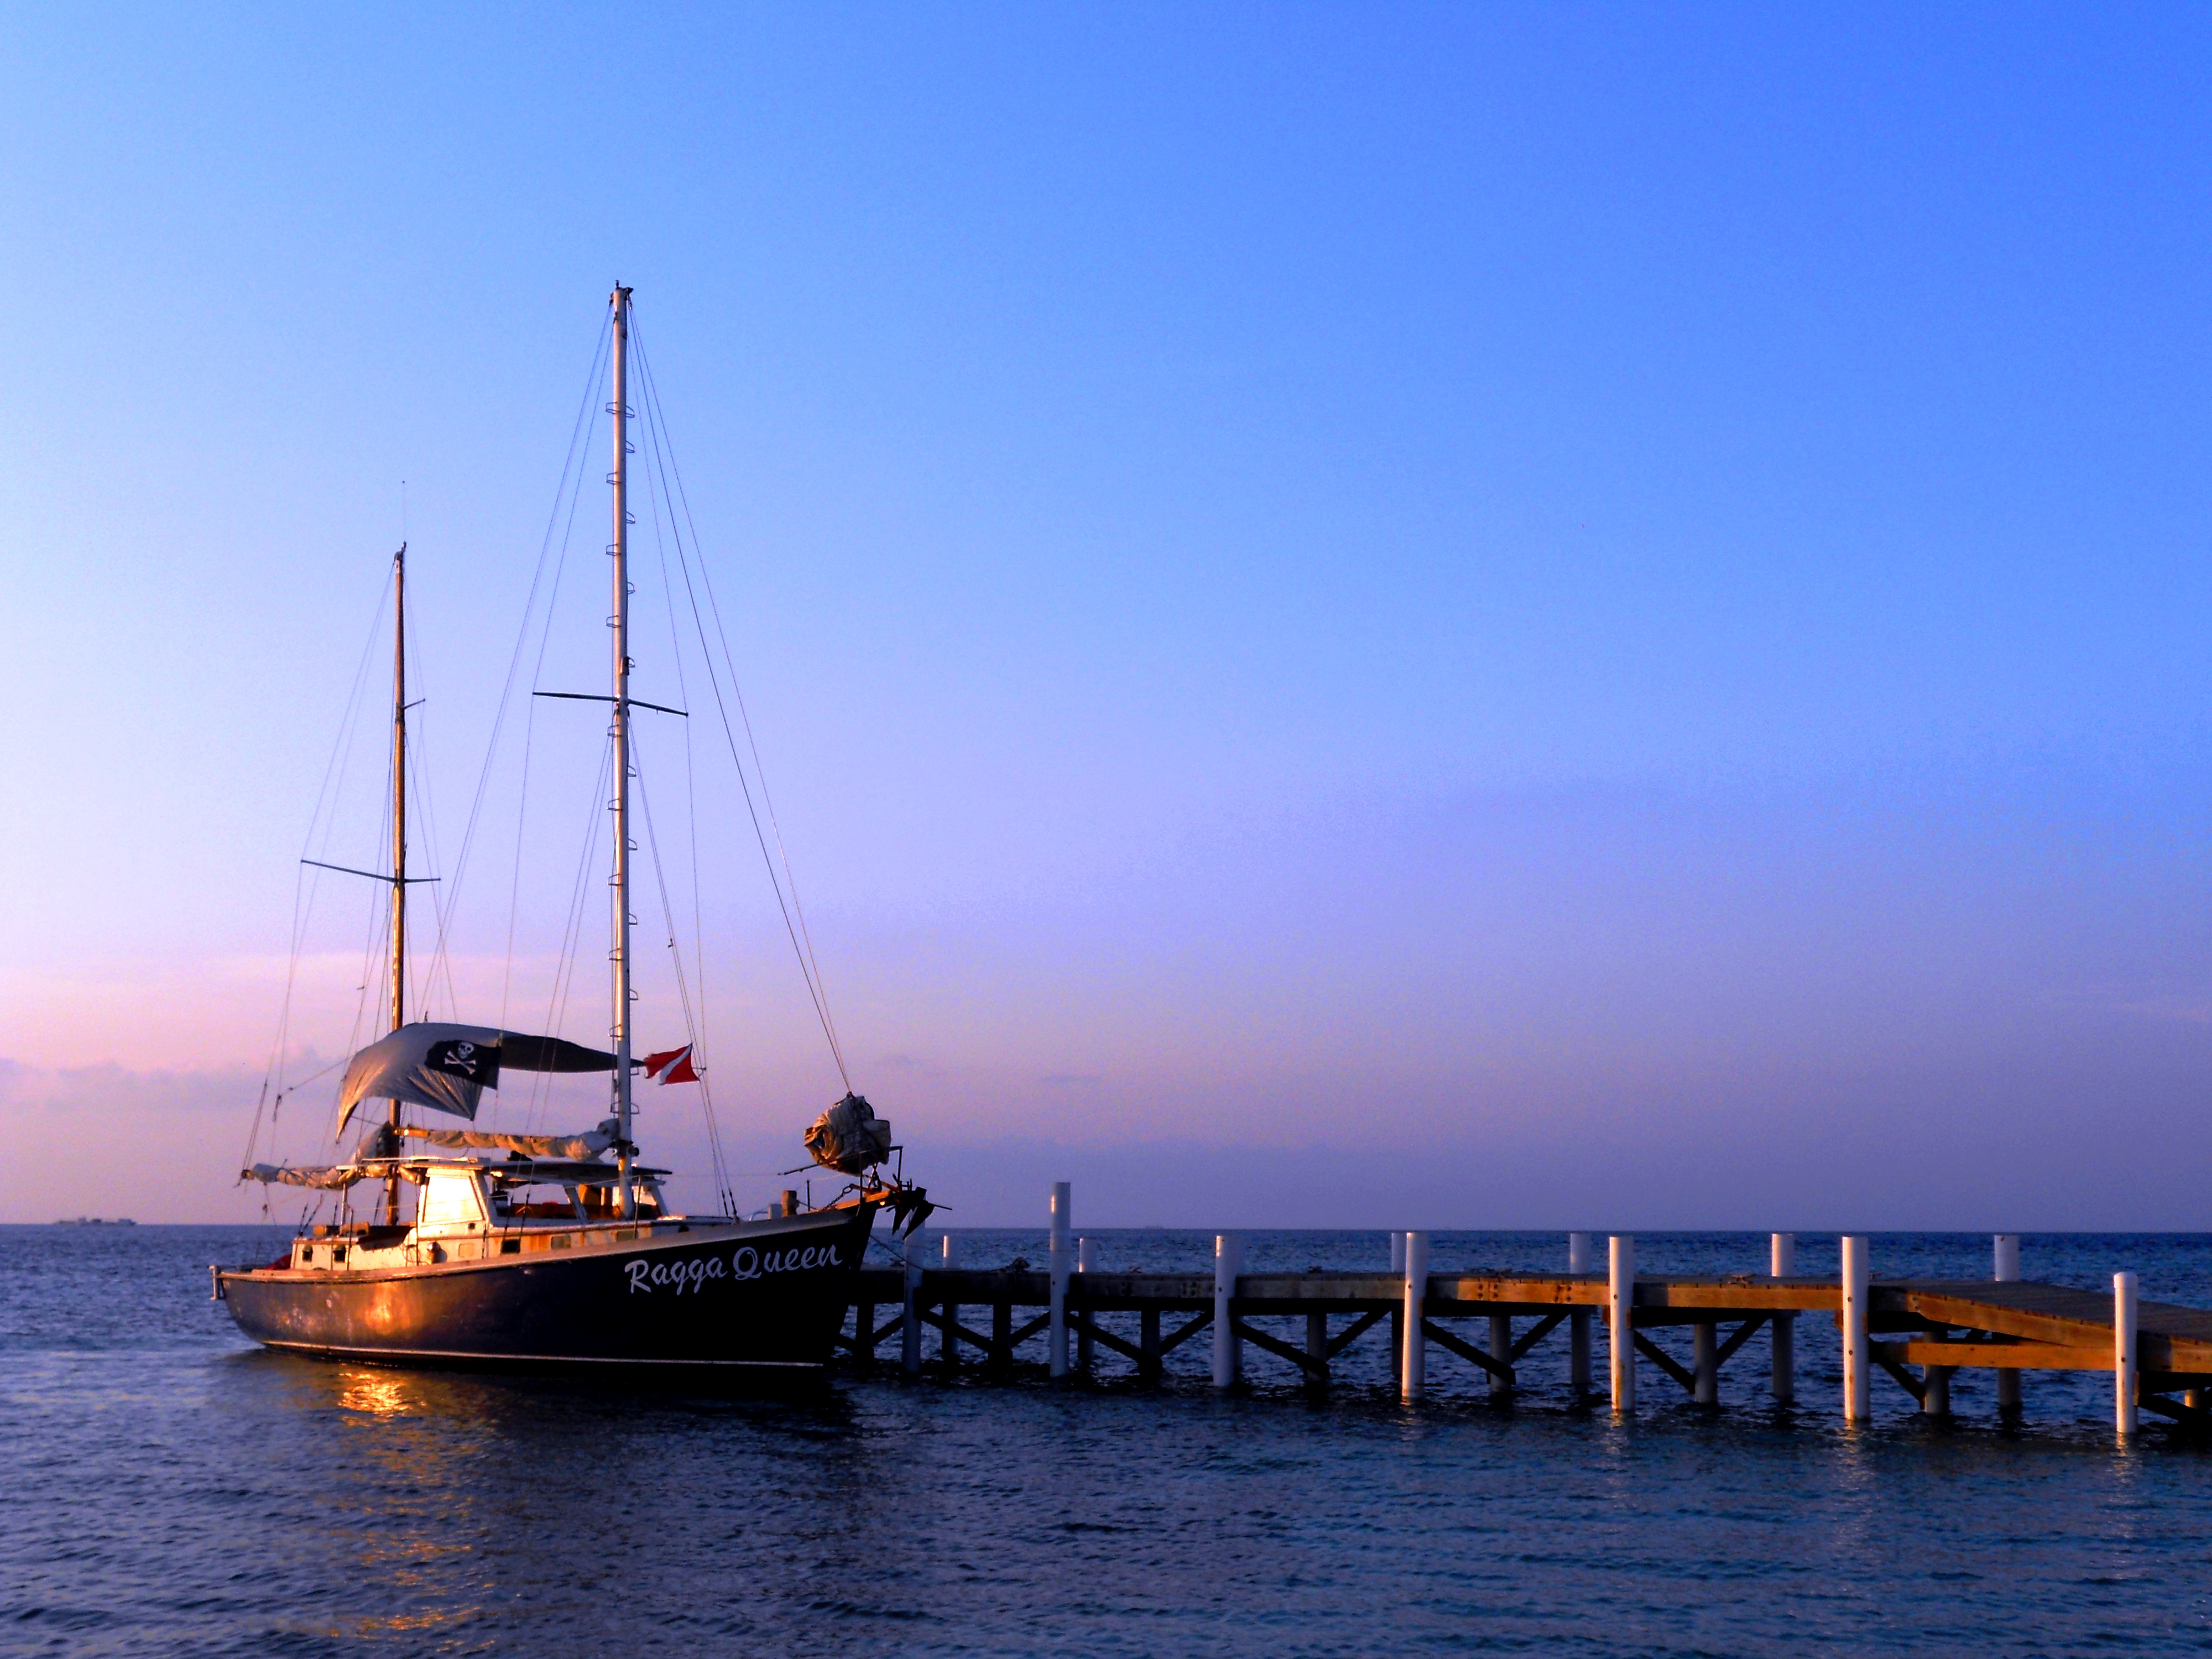 Ragga Queen Docked at Rendezvous Caye by Erin Mutrie